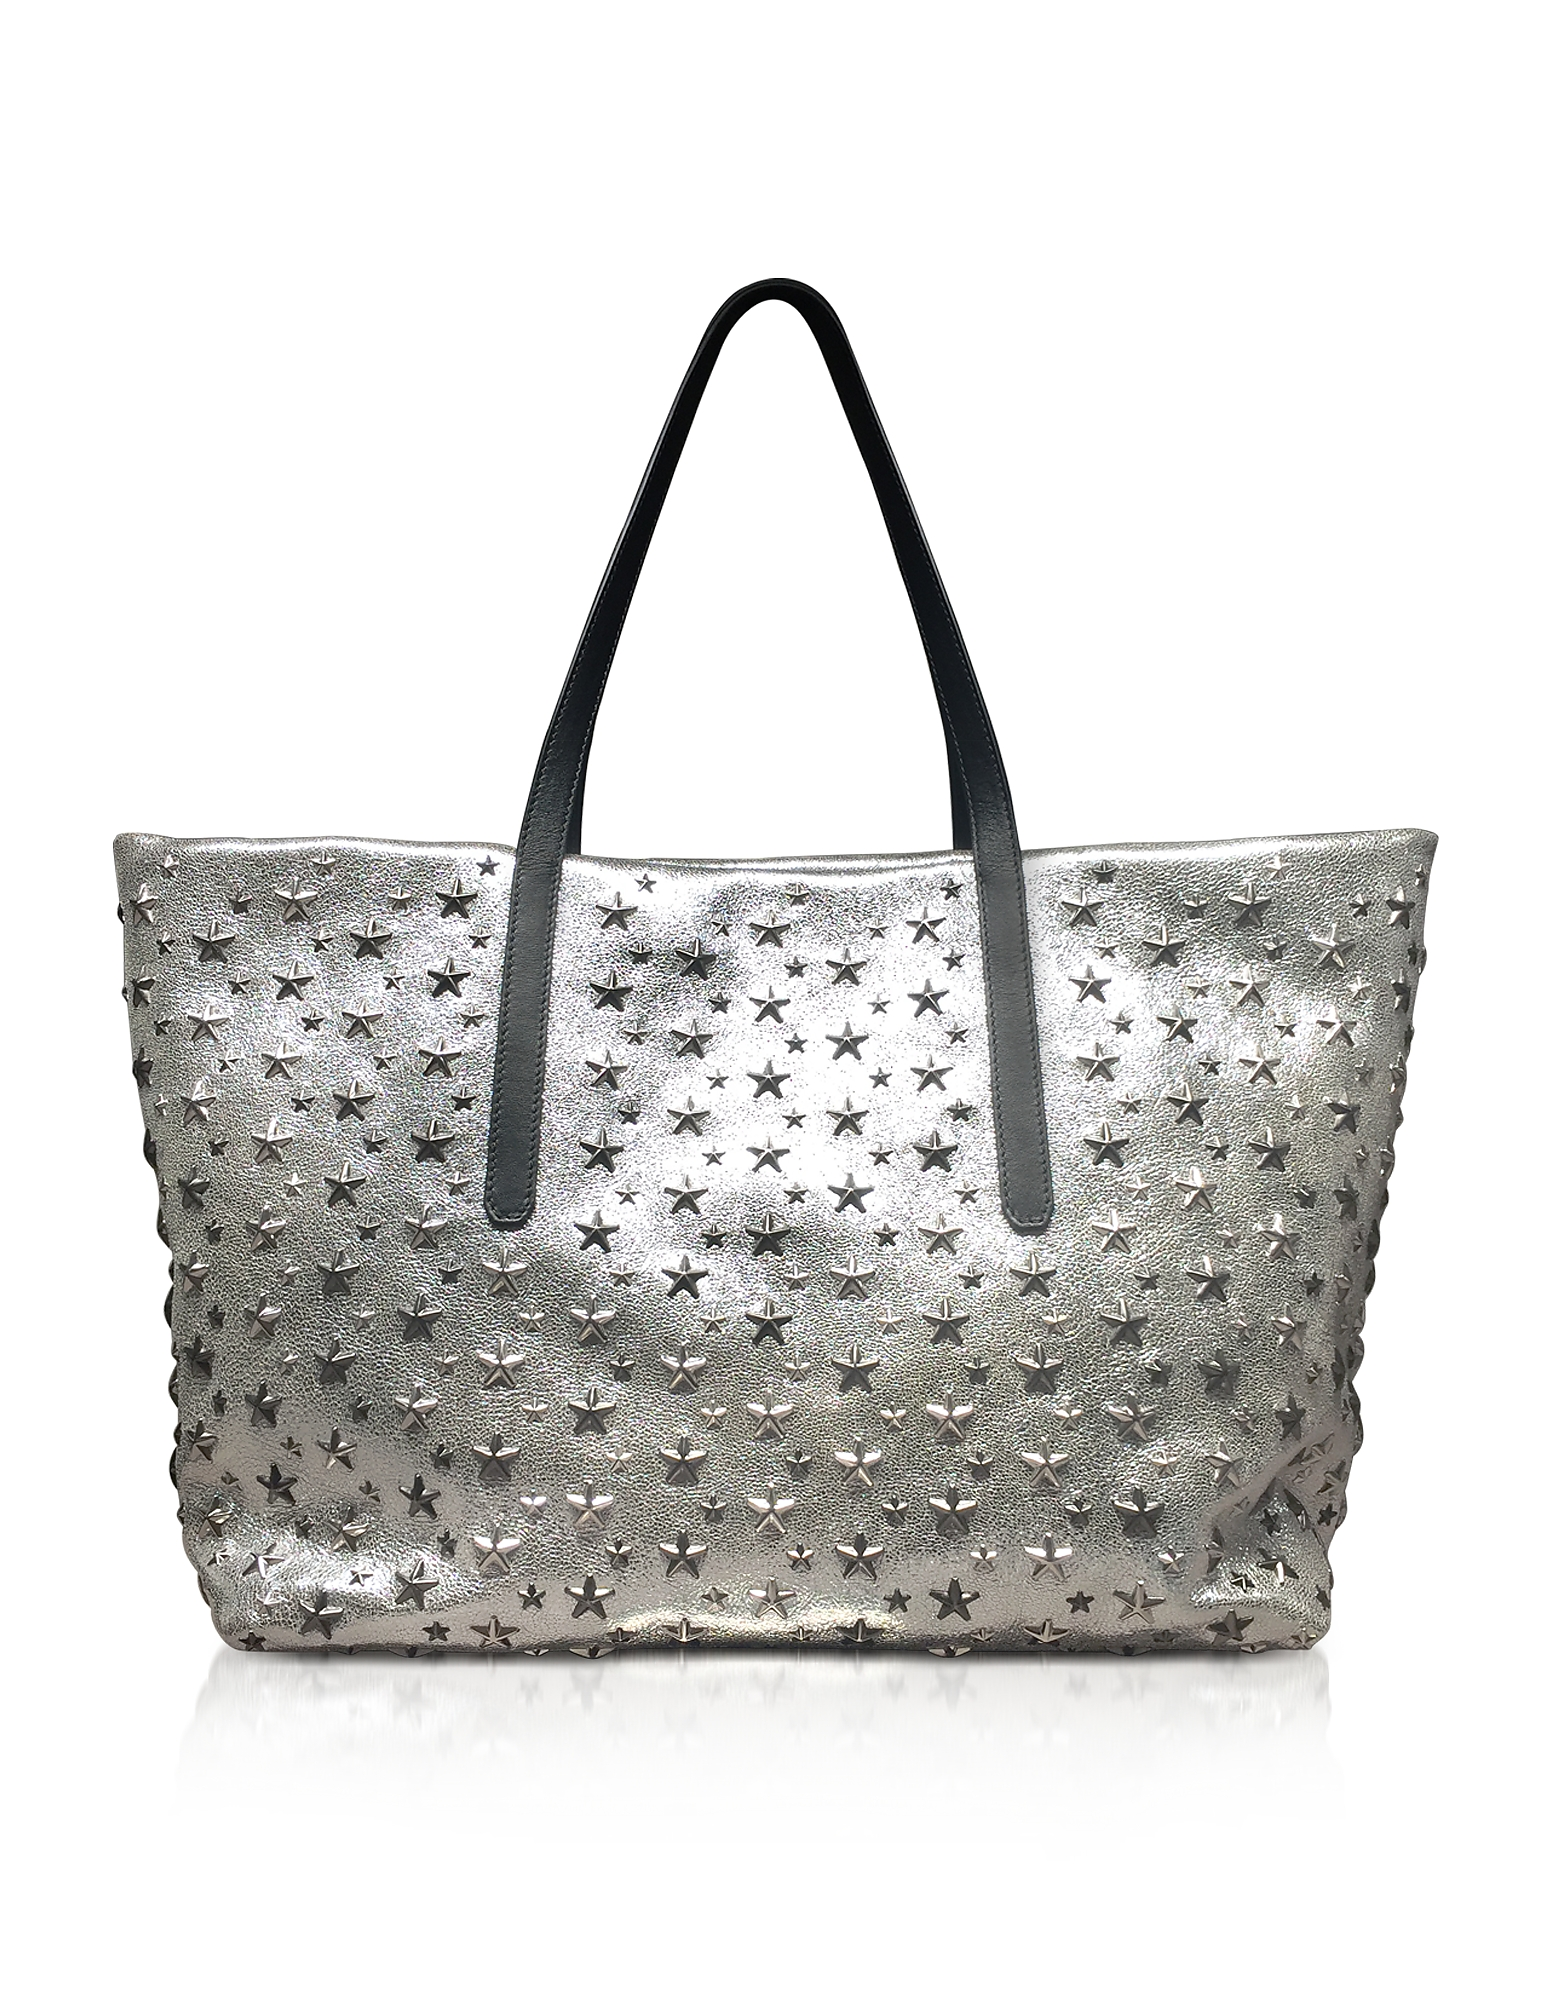 CHAMPAGNE AND SILVER GLITTER LEATHER LARGE PIMLICO TOTE from FORZIERI